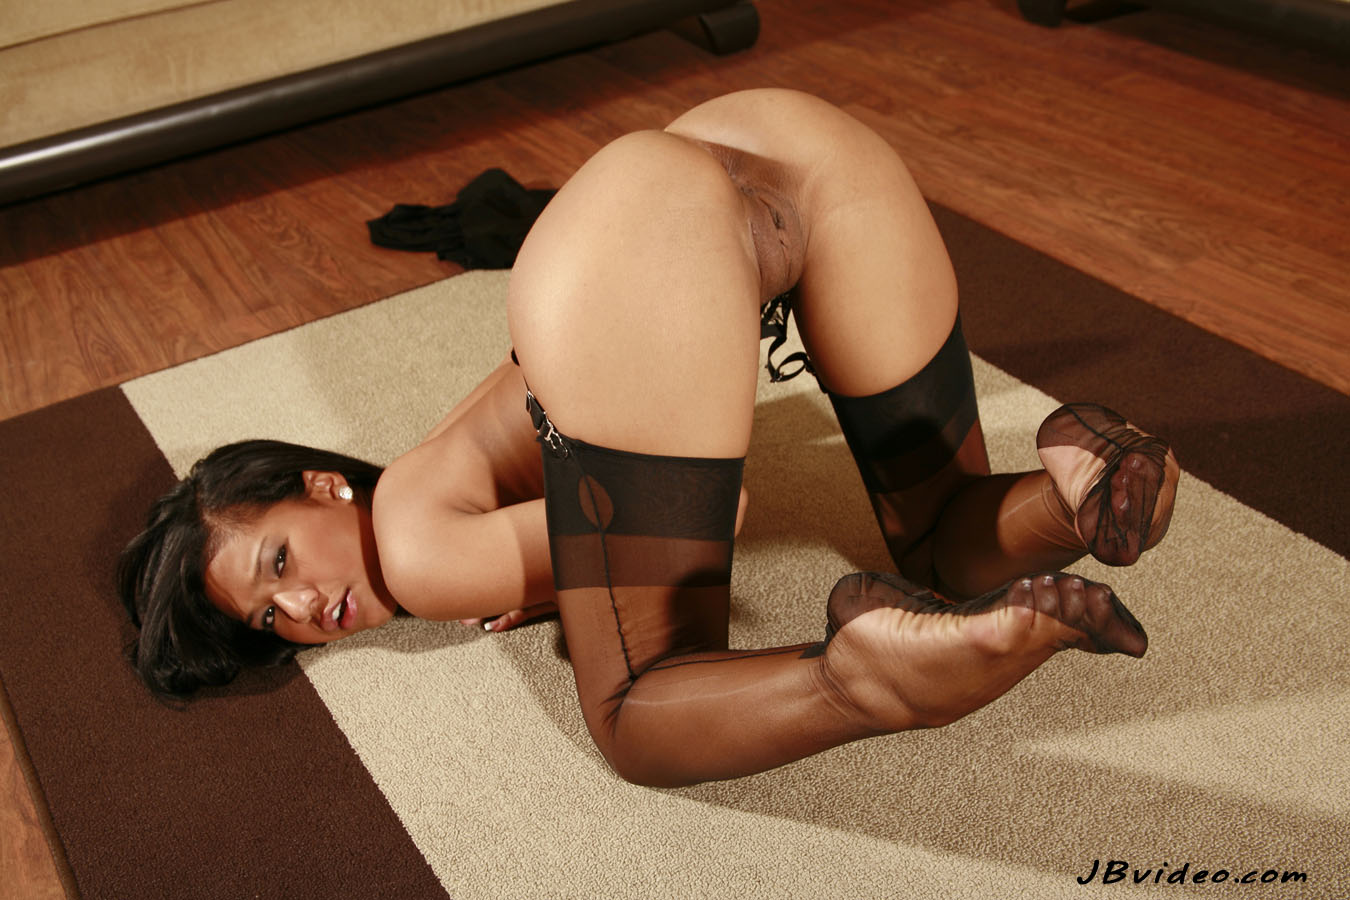 pantyhose feet Panties nylons